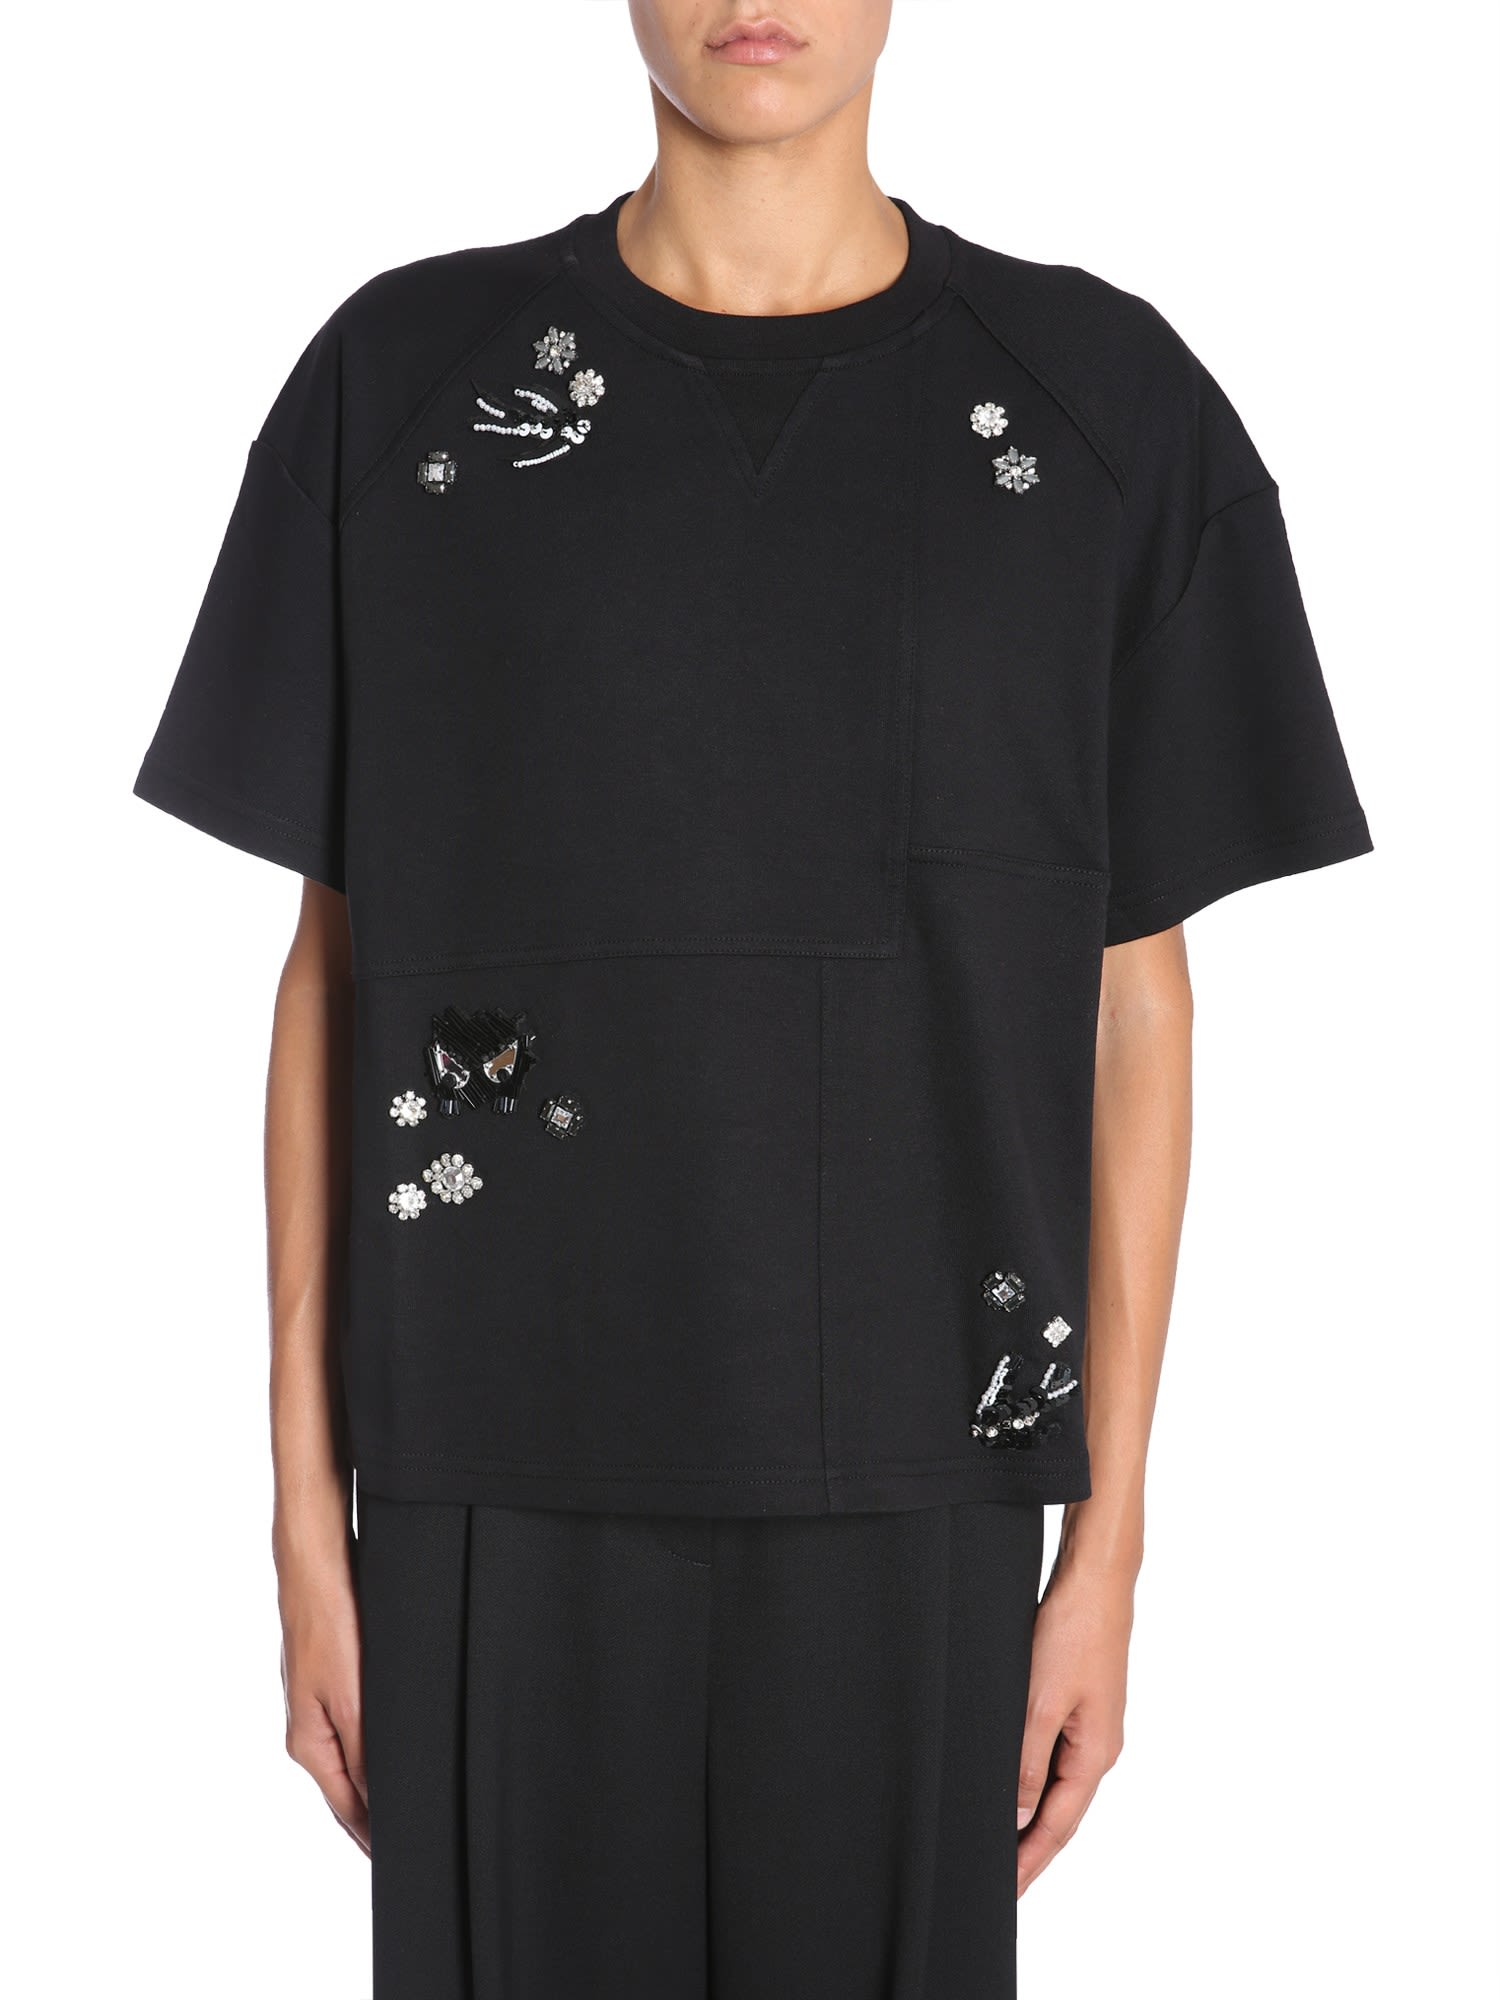 Mcq Alexander Mcqueen Diamante Deco Swallow T-Shirt - Black